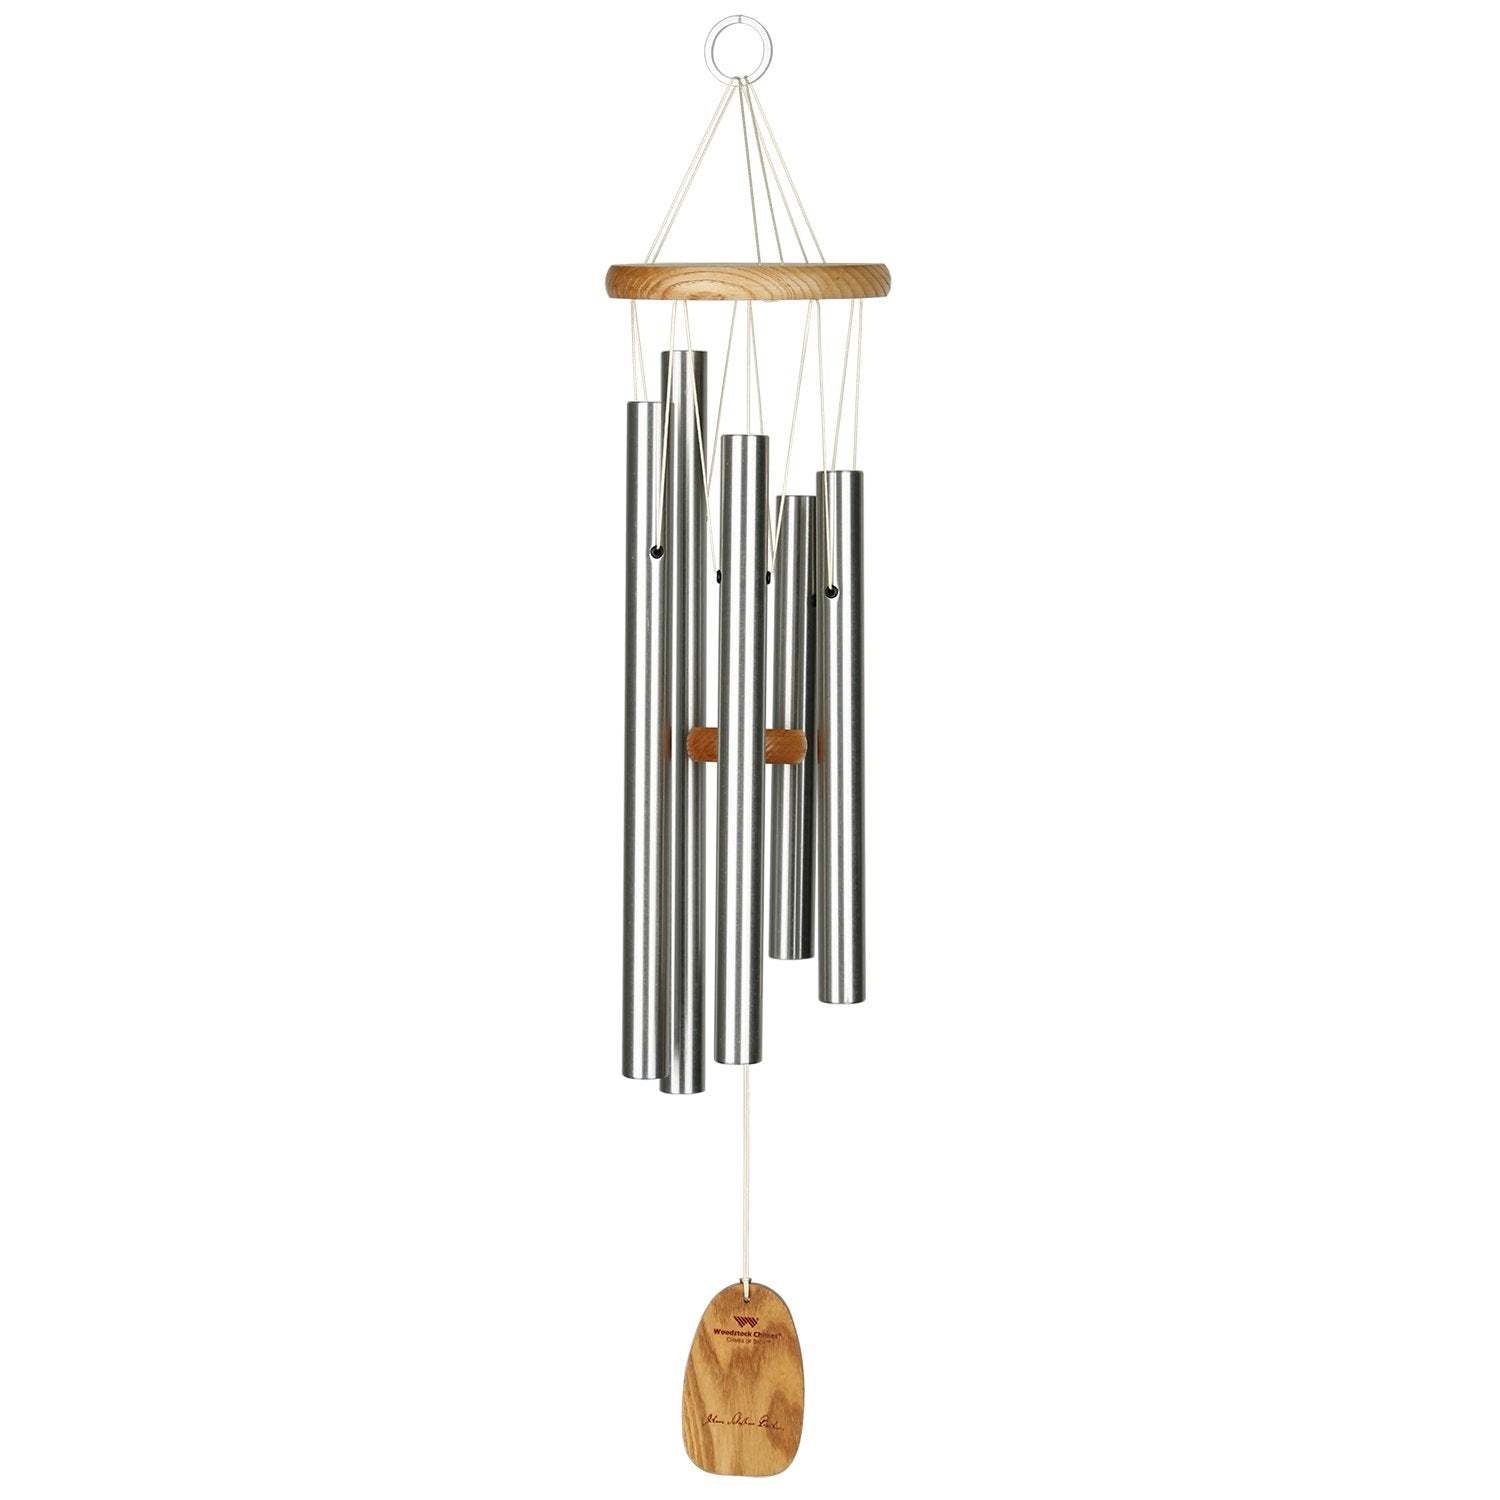 Chimes of Bach full product image